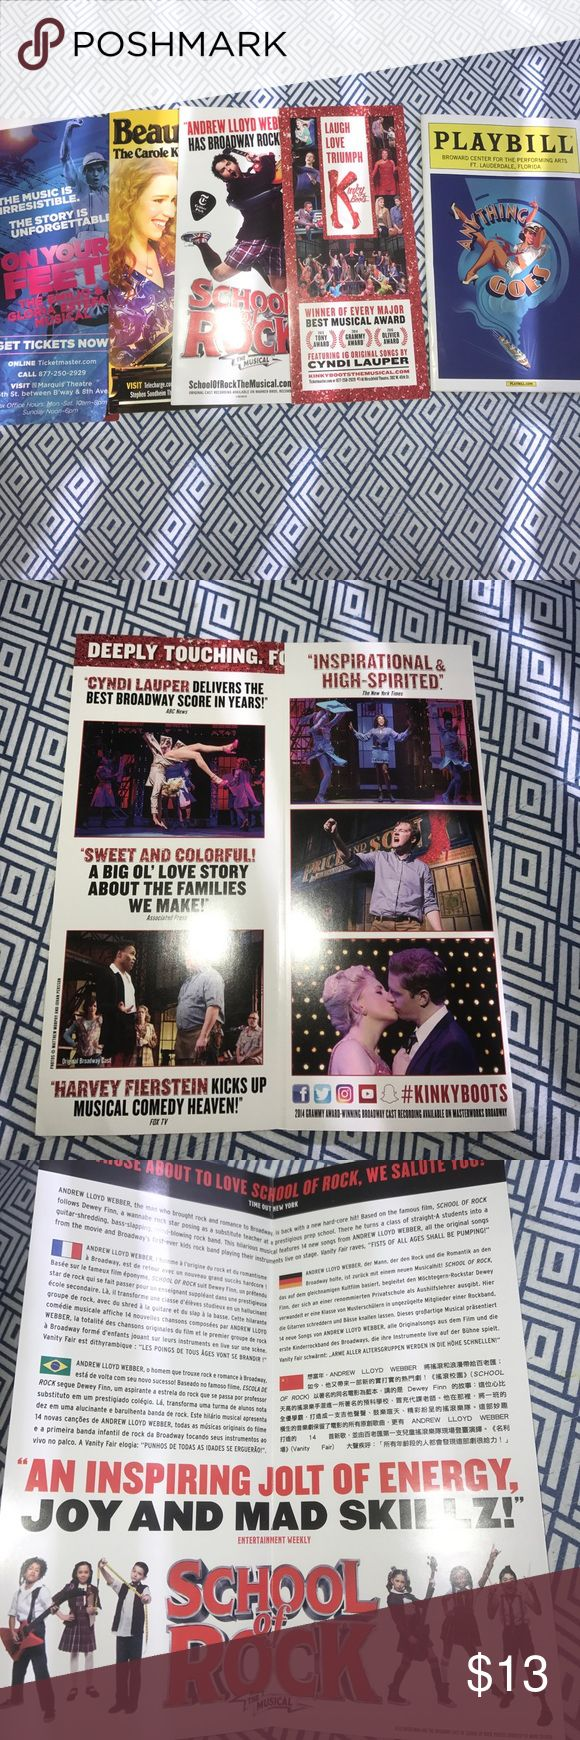 Broadway Musical Bundle! (PlayBill and more!) Bundle includes: Anything Goes Revival National Tour Program, On your Feet! Pamphlet, Kinky Boots Pamphlet, Beautiful The Carole King Musical Pamphlet and School of Rock Pamphlet Other